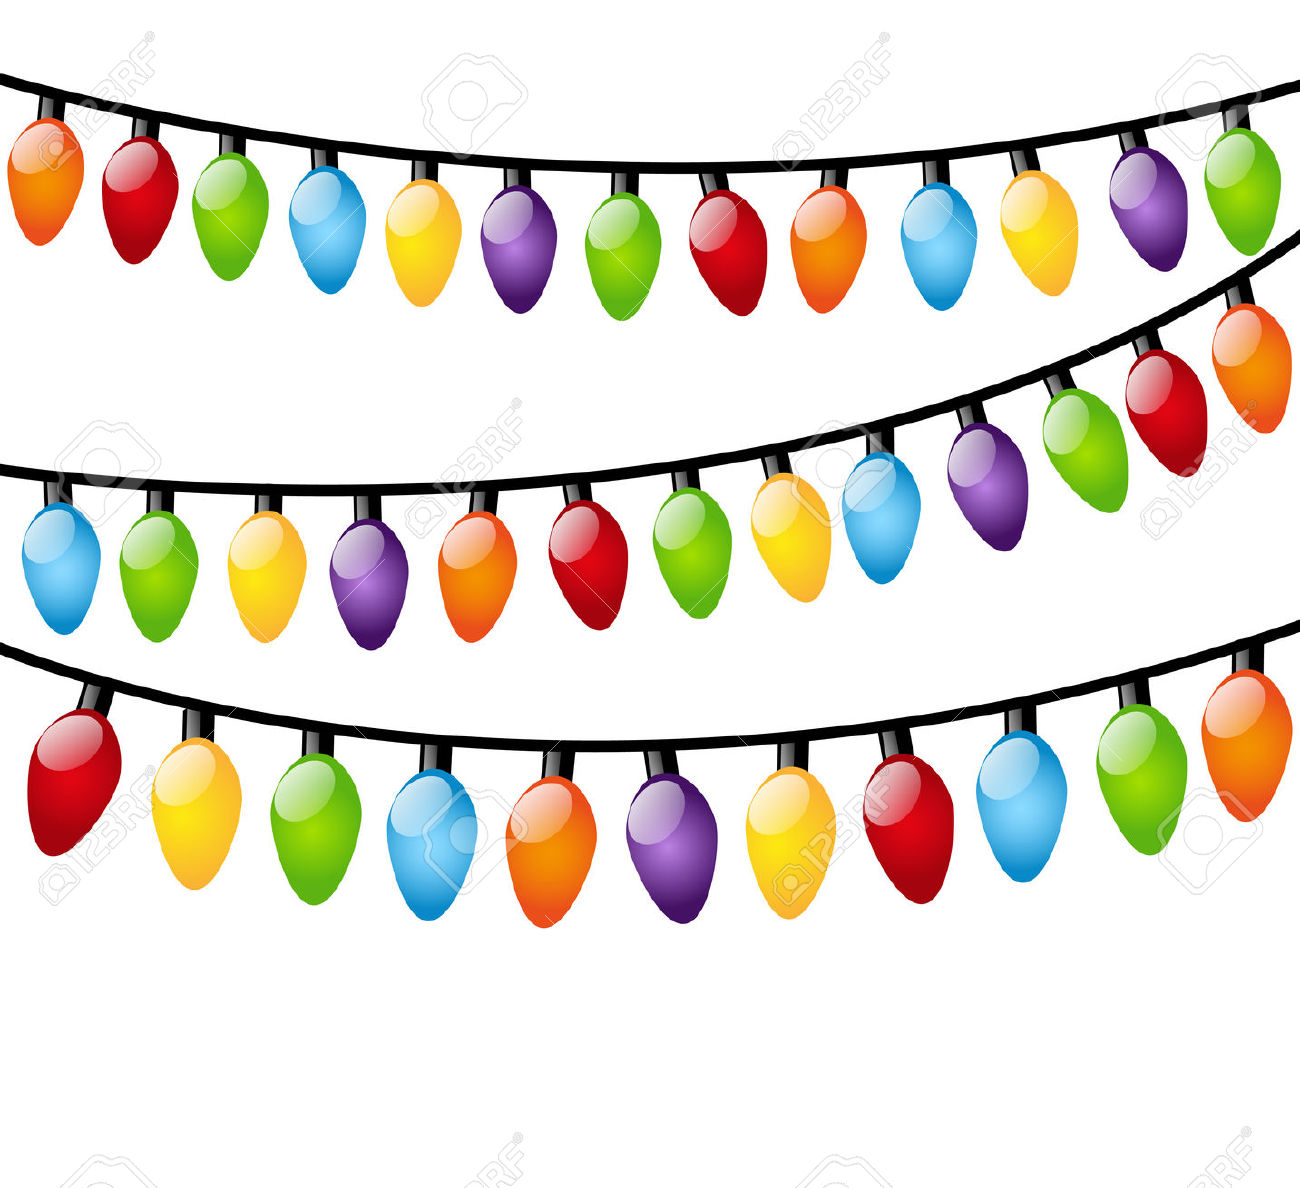 Christmas lights clipart transparent free.